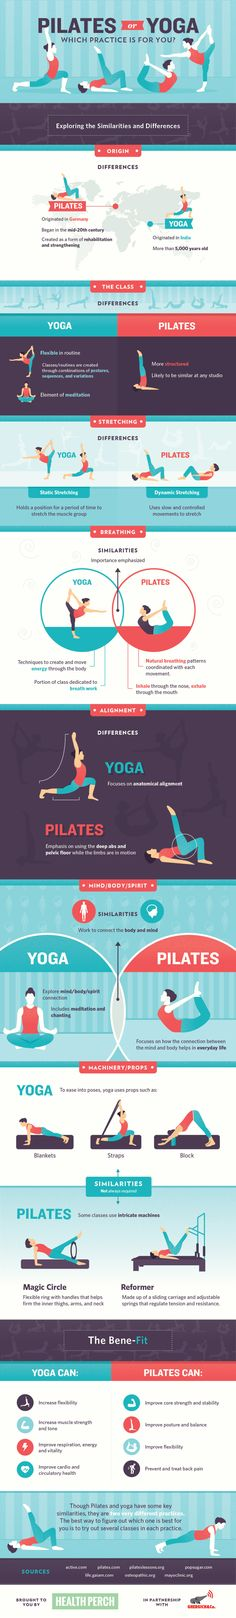 Pilates or Yoga: Which Practice is for You?